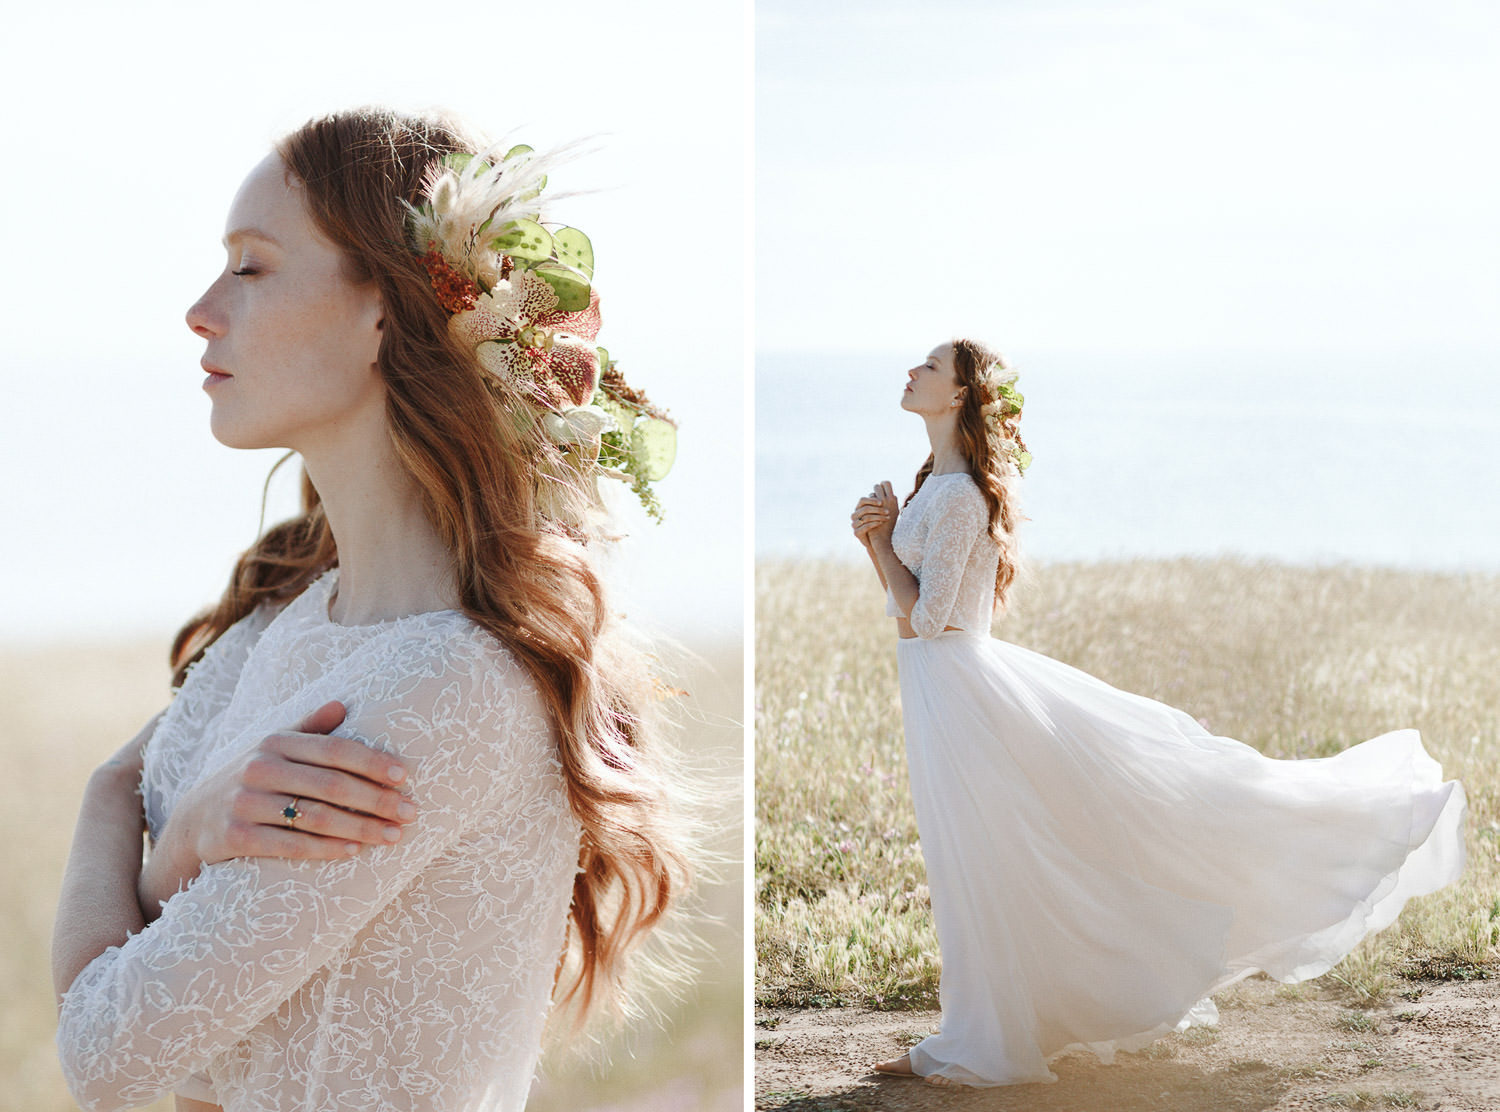 Ethereal and beautiful bride wears a flowing chiffon gown designed by Silvia Valli - Photo: Camilla Anchisi